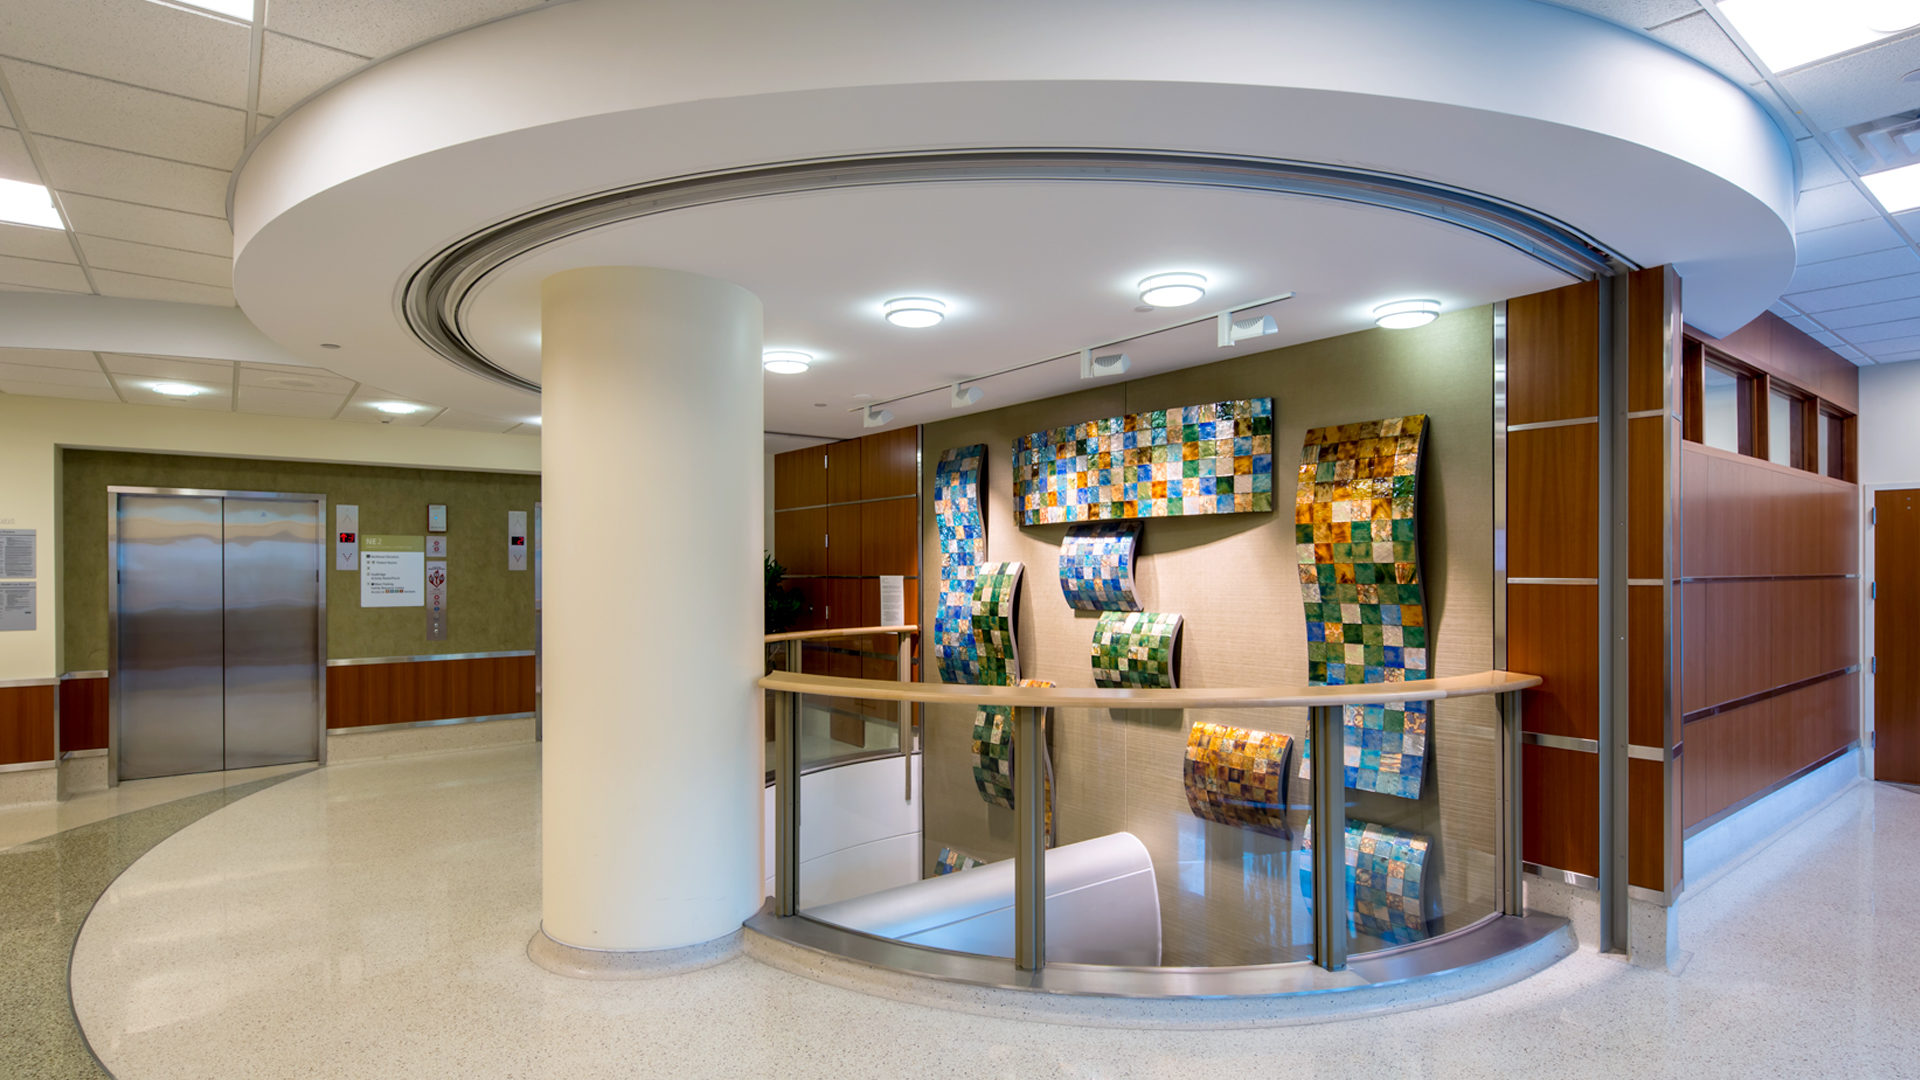 Regions Mental Health Center St Paul MN Healthcare 2-Sotry Art Display Near Elevator Banks